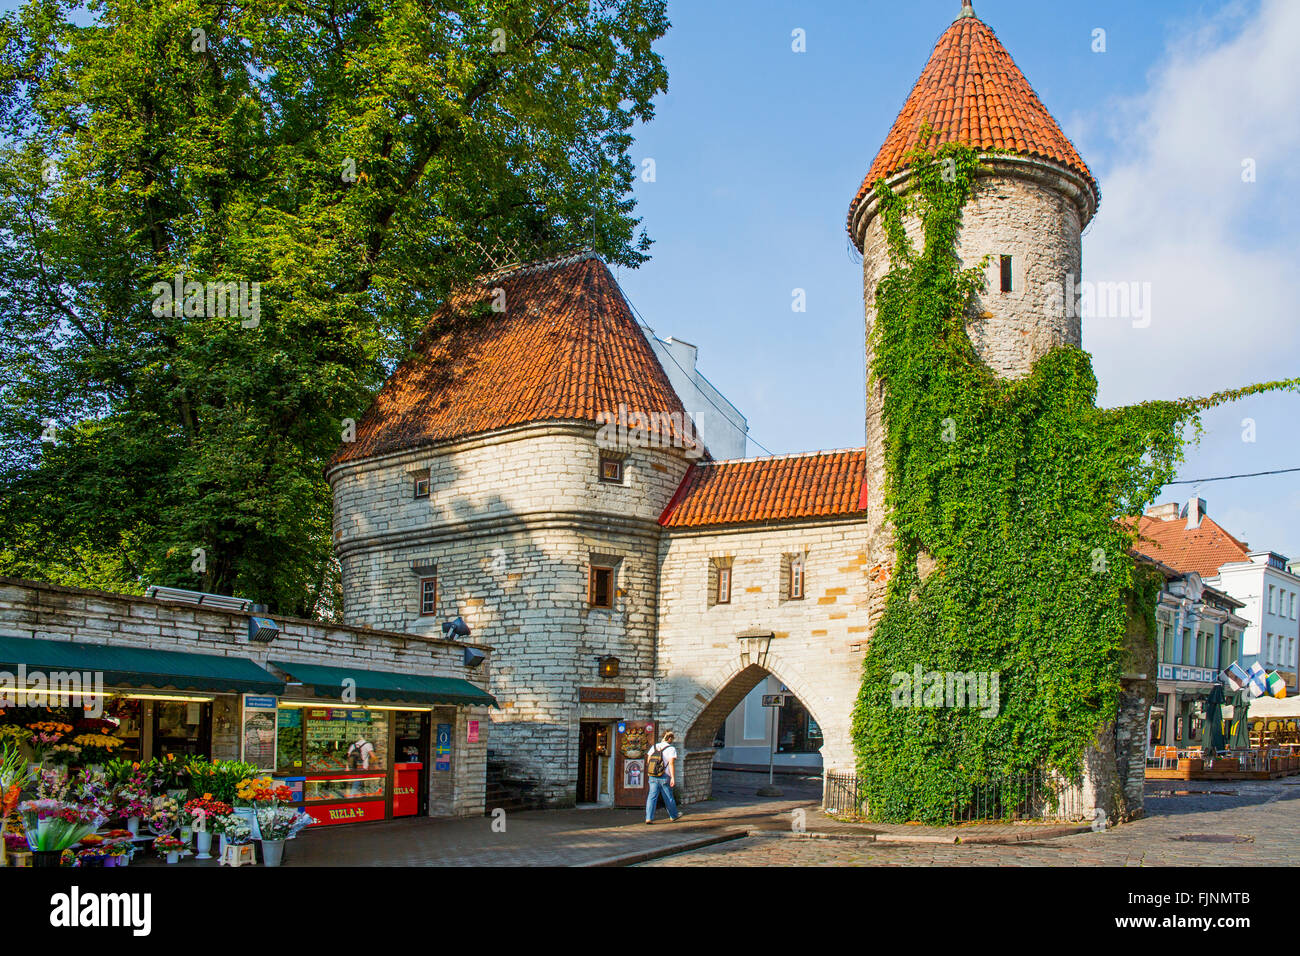 geography / travel, Estonia, Tallinn, old city gate, Viru Gate, entrance to the Lower city, Additional-Rights-Clearance - Stock Image